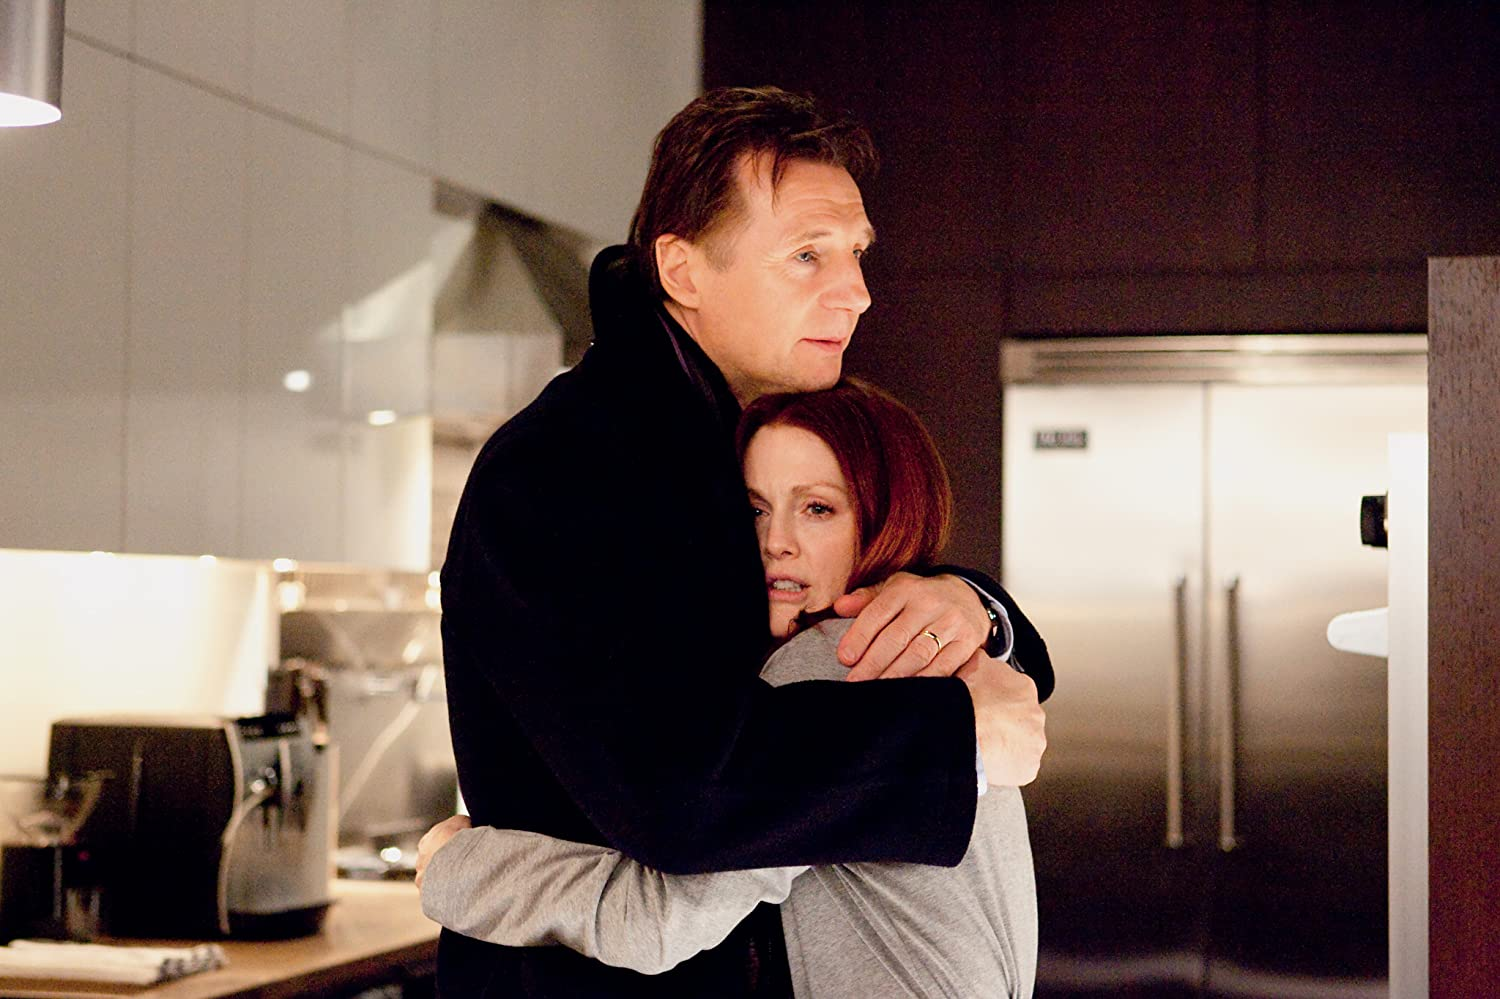 Julianne Moore and Liam Neeson in Chloe (2009)